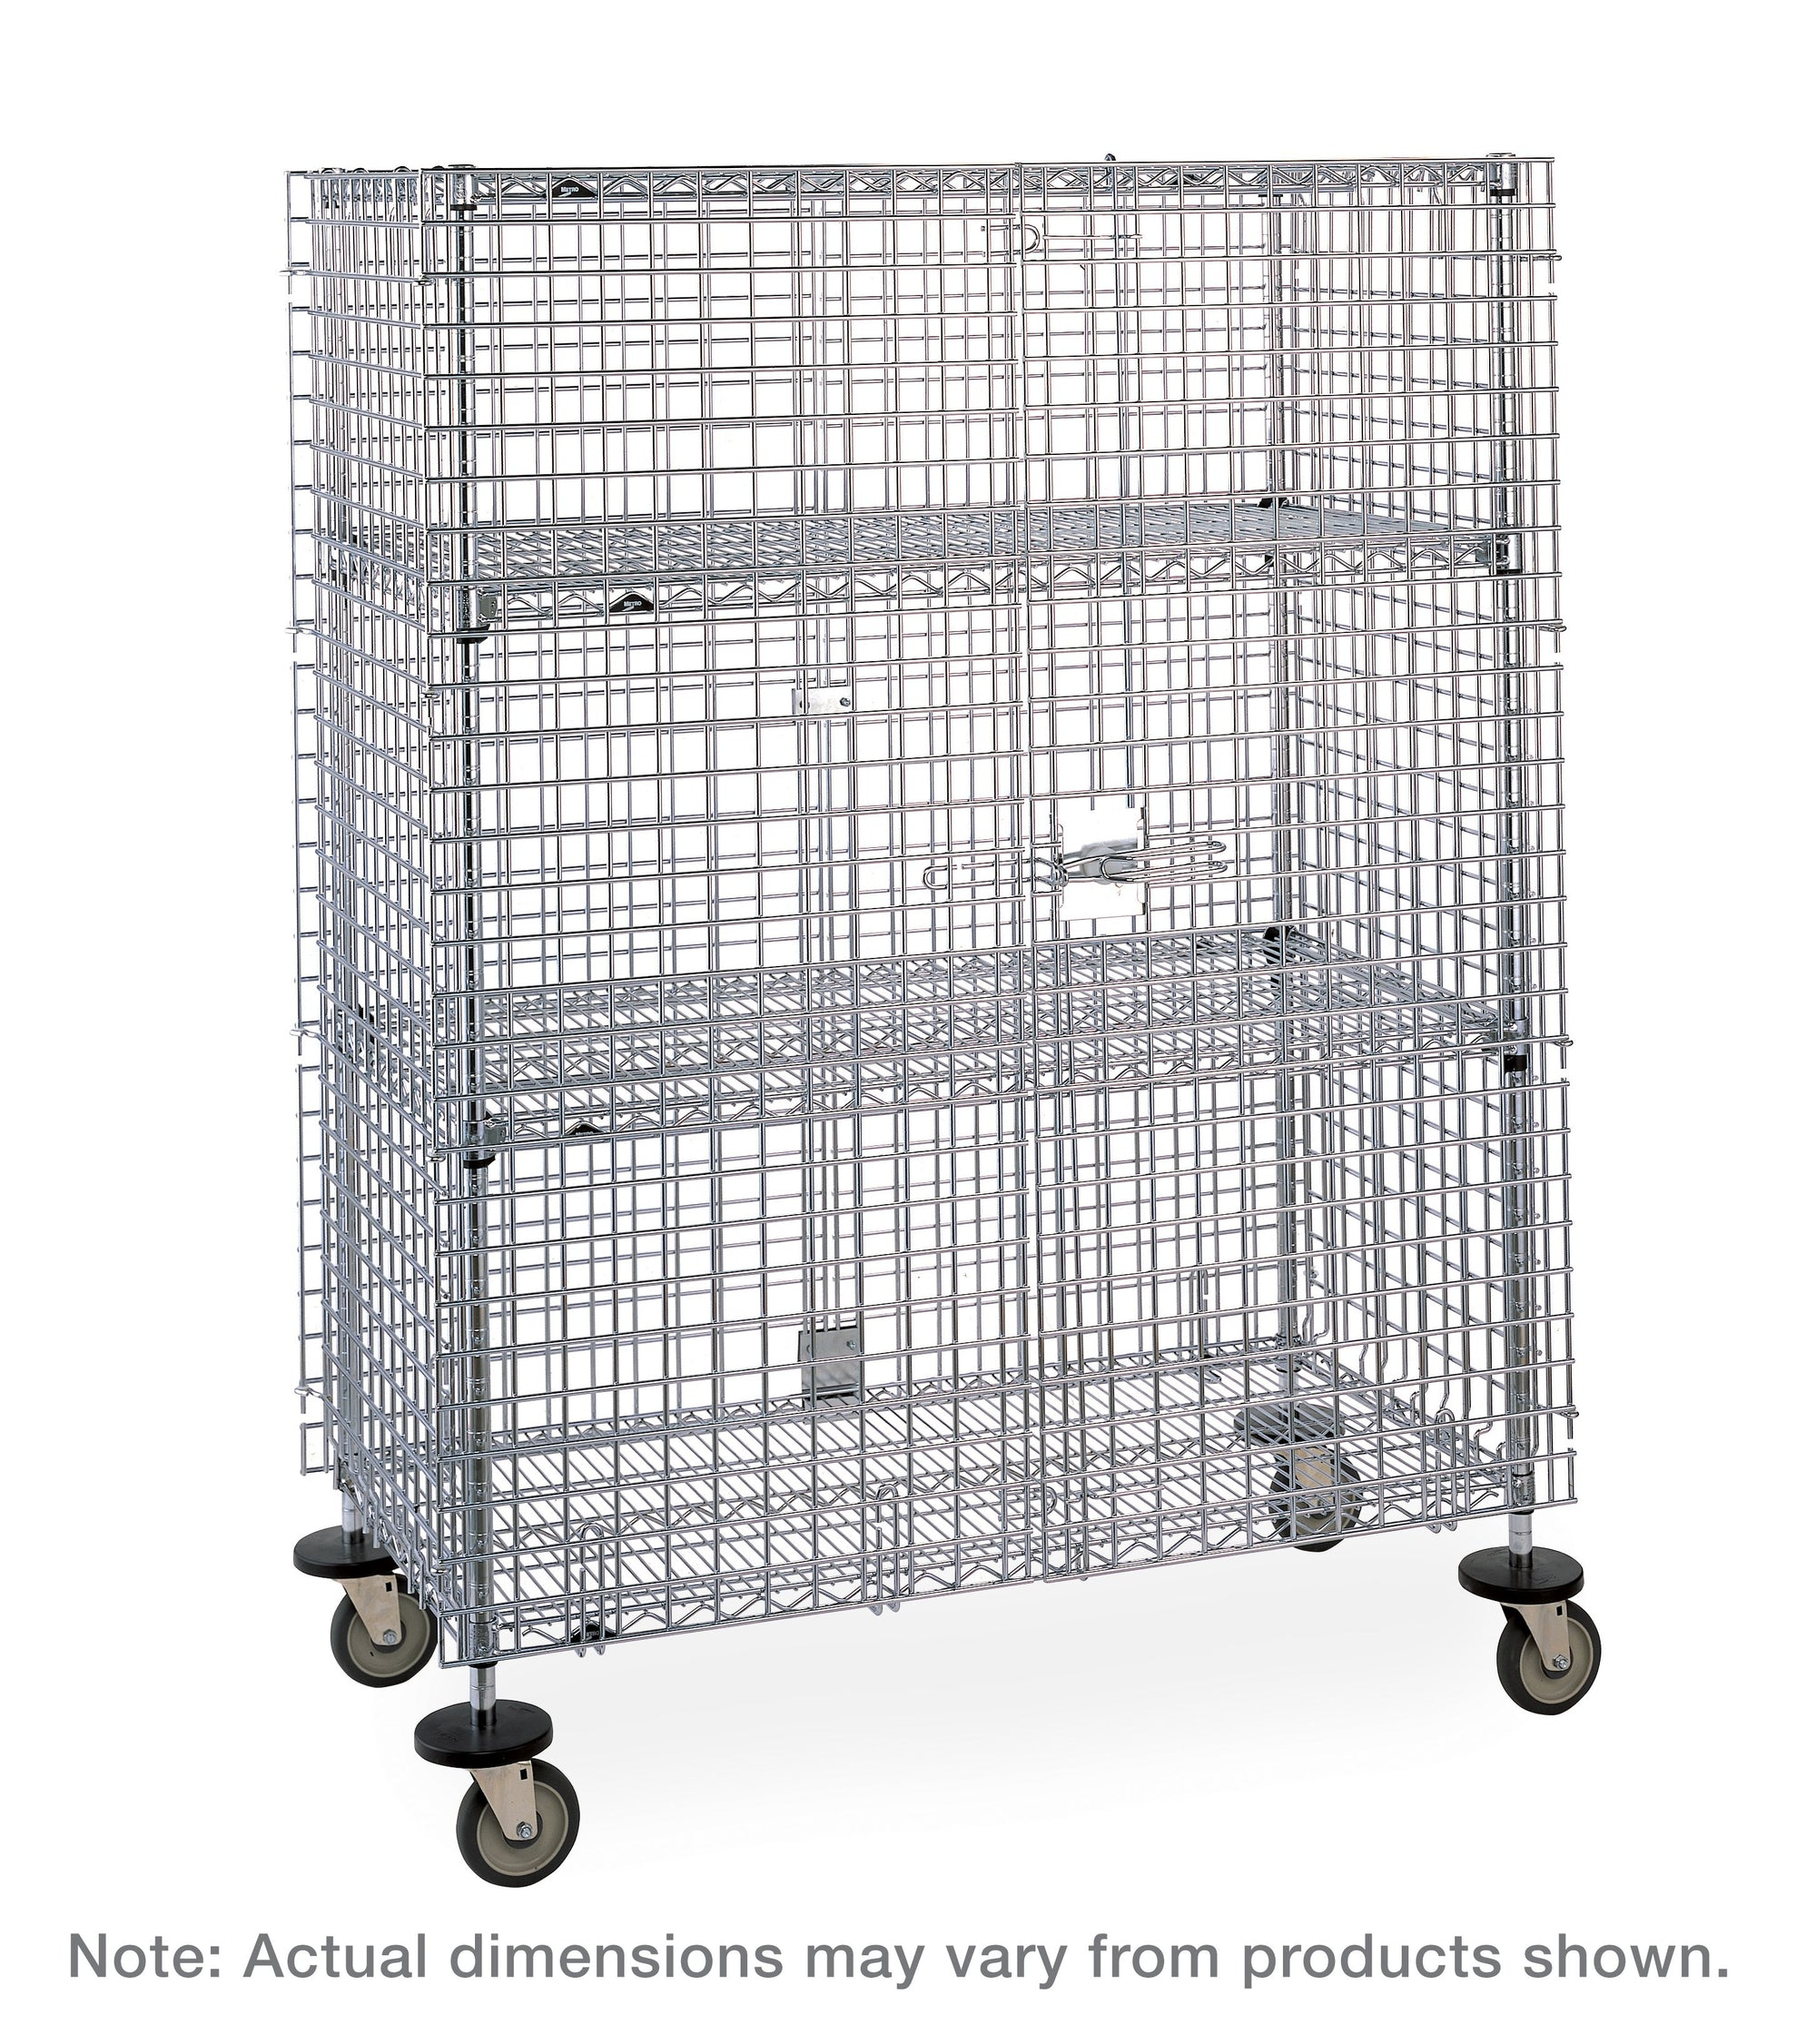 Super Erecta Mobile Security Shelving Unit - 2 Intermediate Shelves